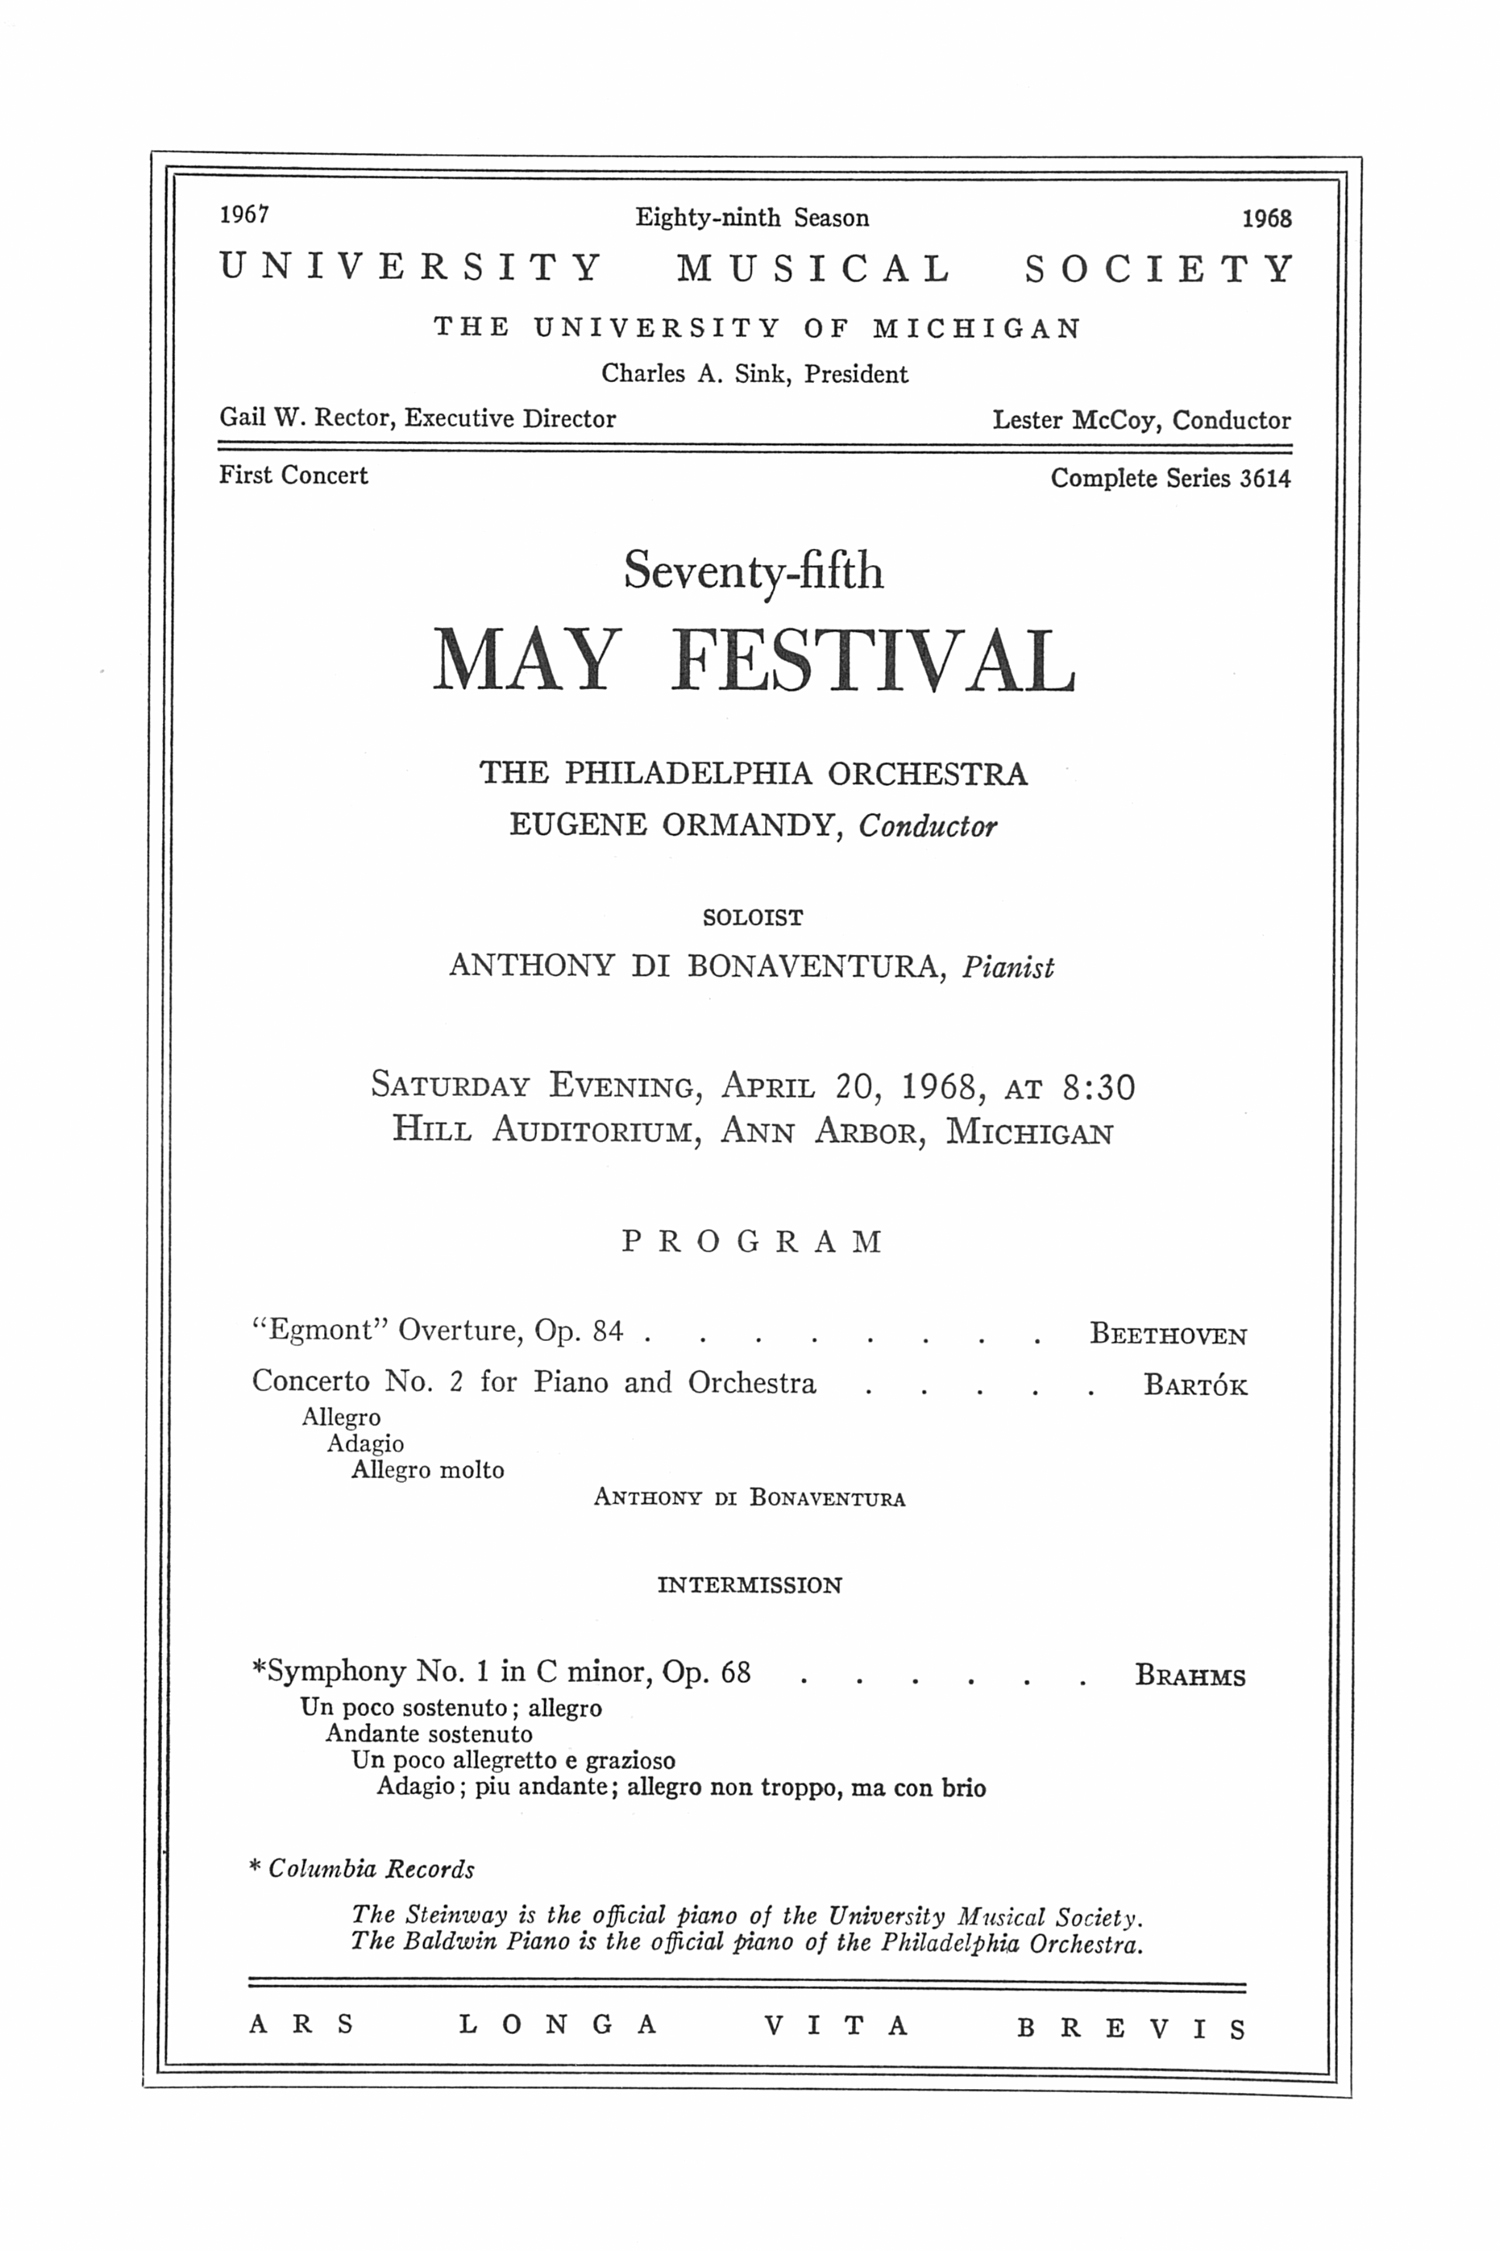 UMS Concert Program, April 20, 1968: Seventy-fifth May Festival -- The Philadelphia Orchestra image